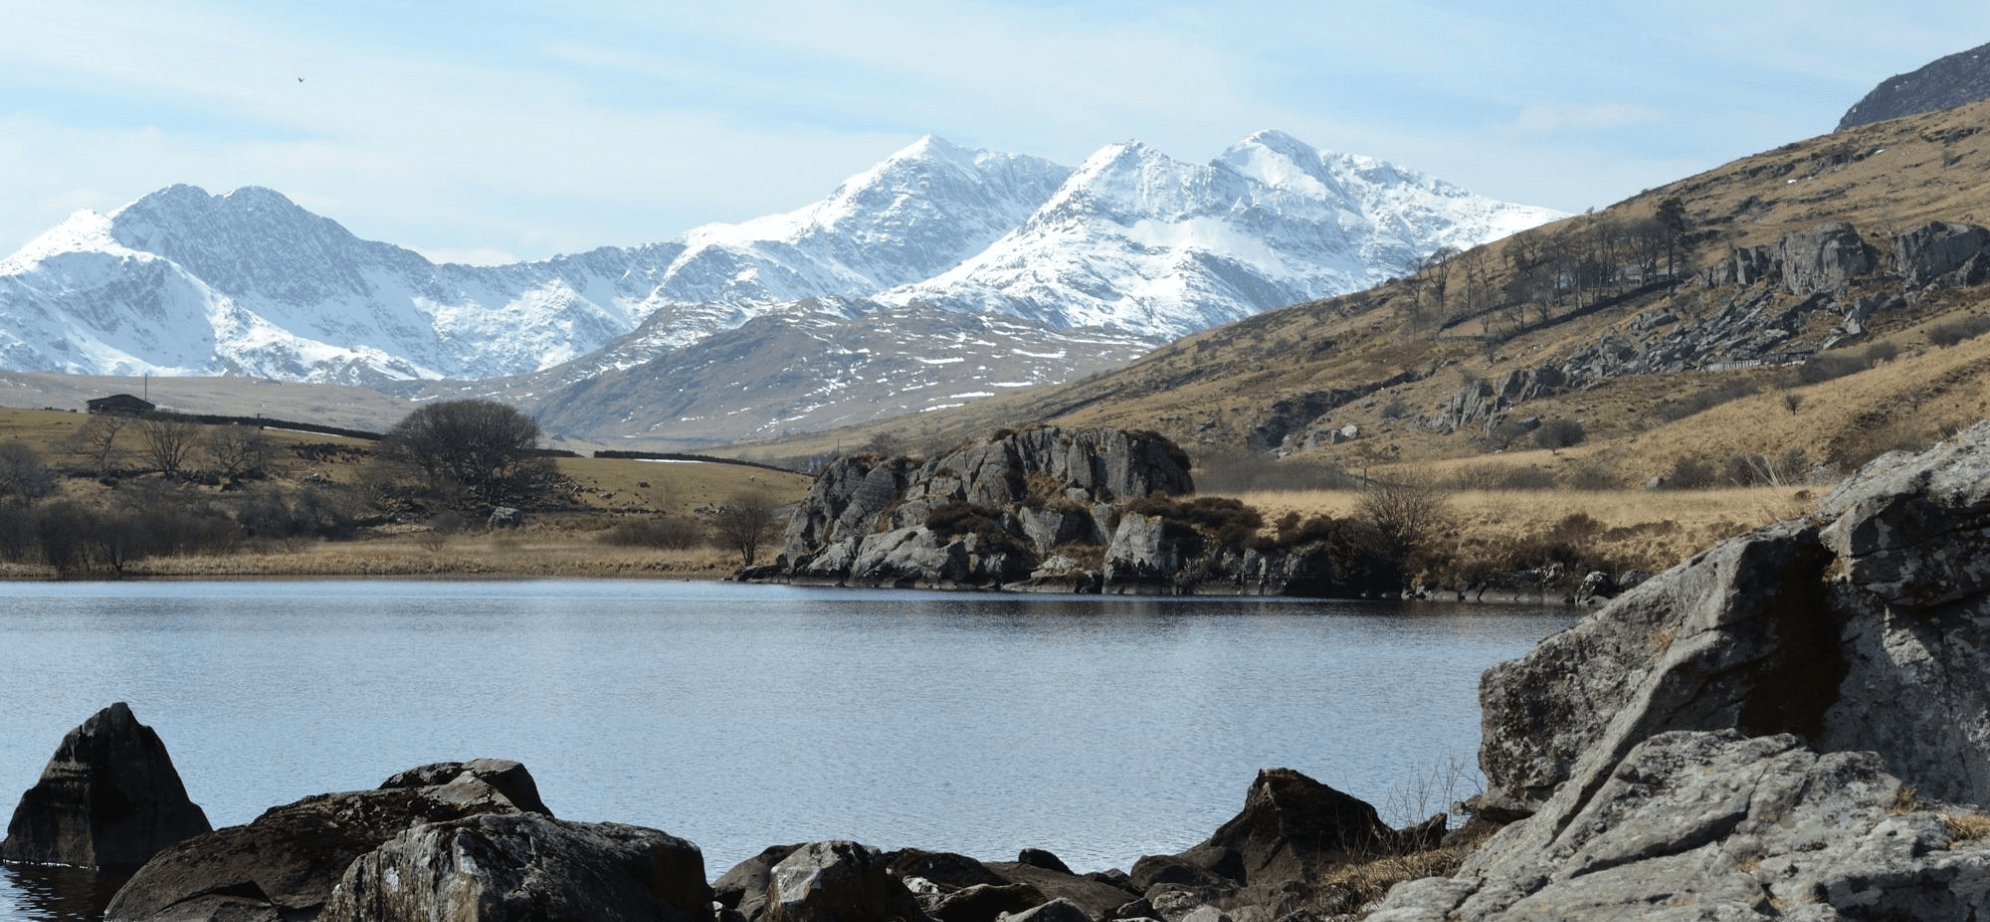 Mount Snowdonia looming over lake in Snowdonia